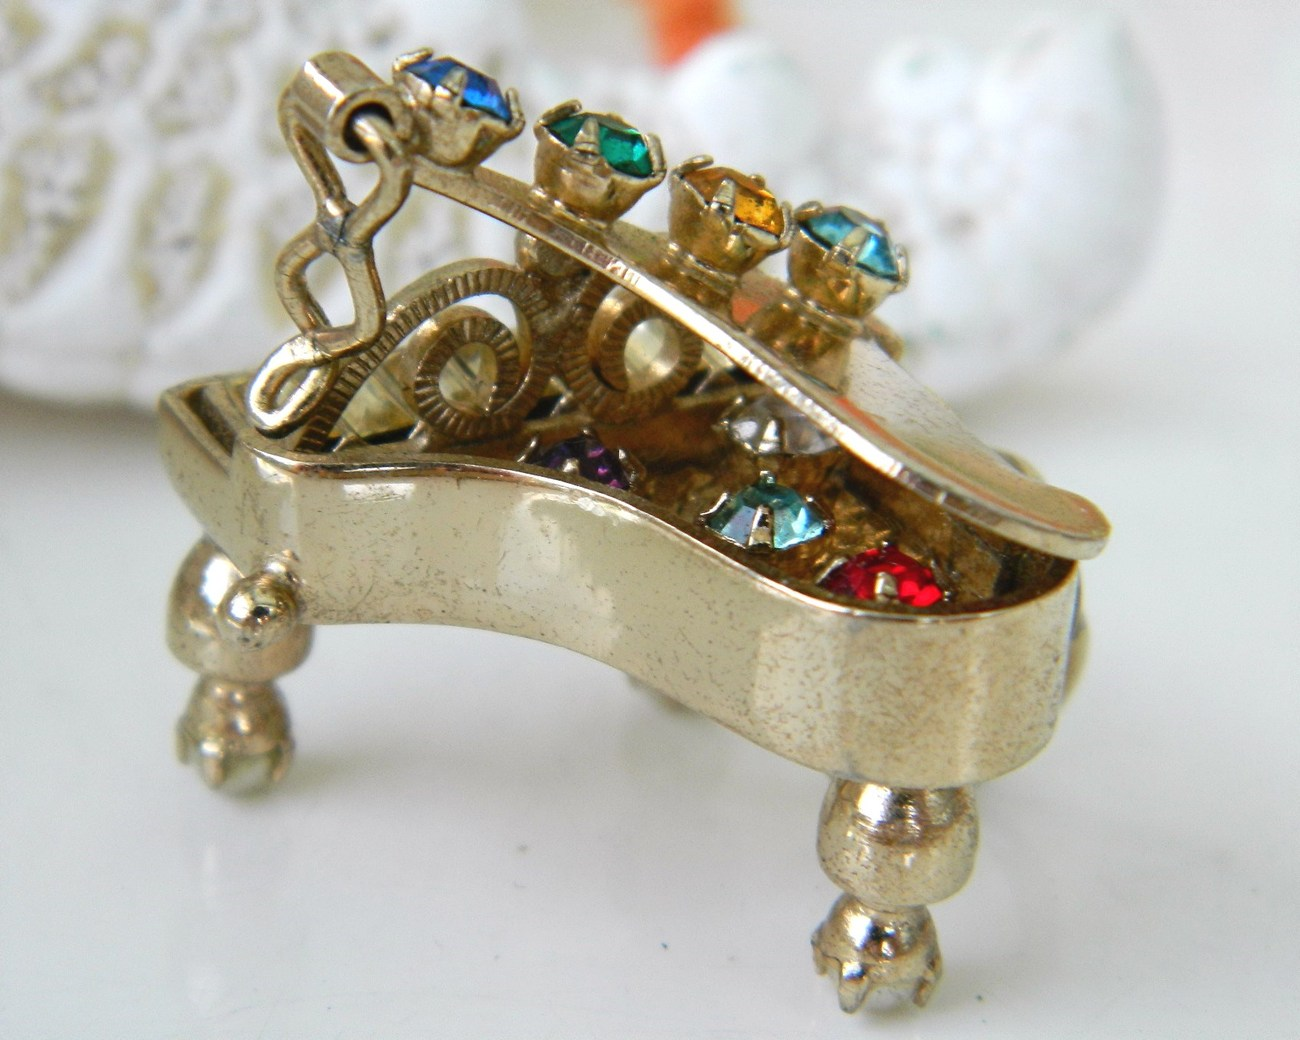 Vintage_grand_piano_pendant_charm_mechanical_rhinestones_3d